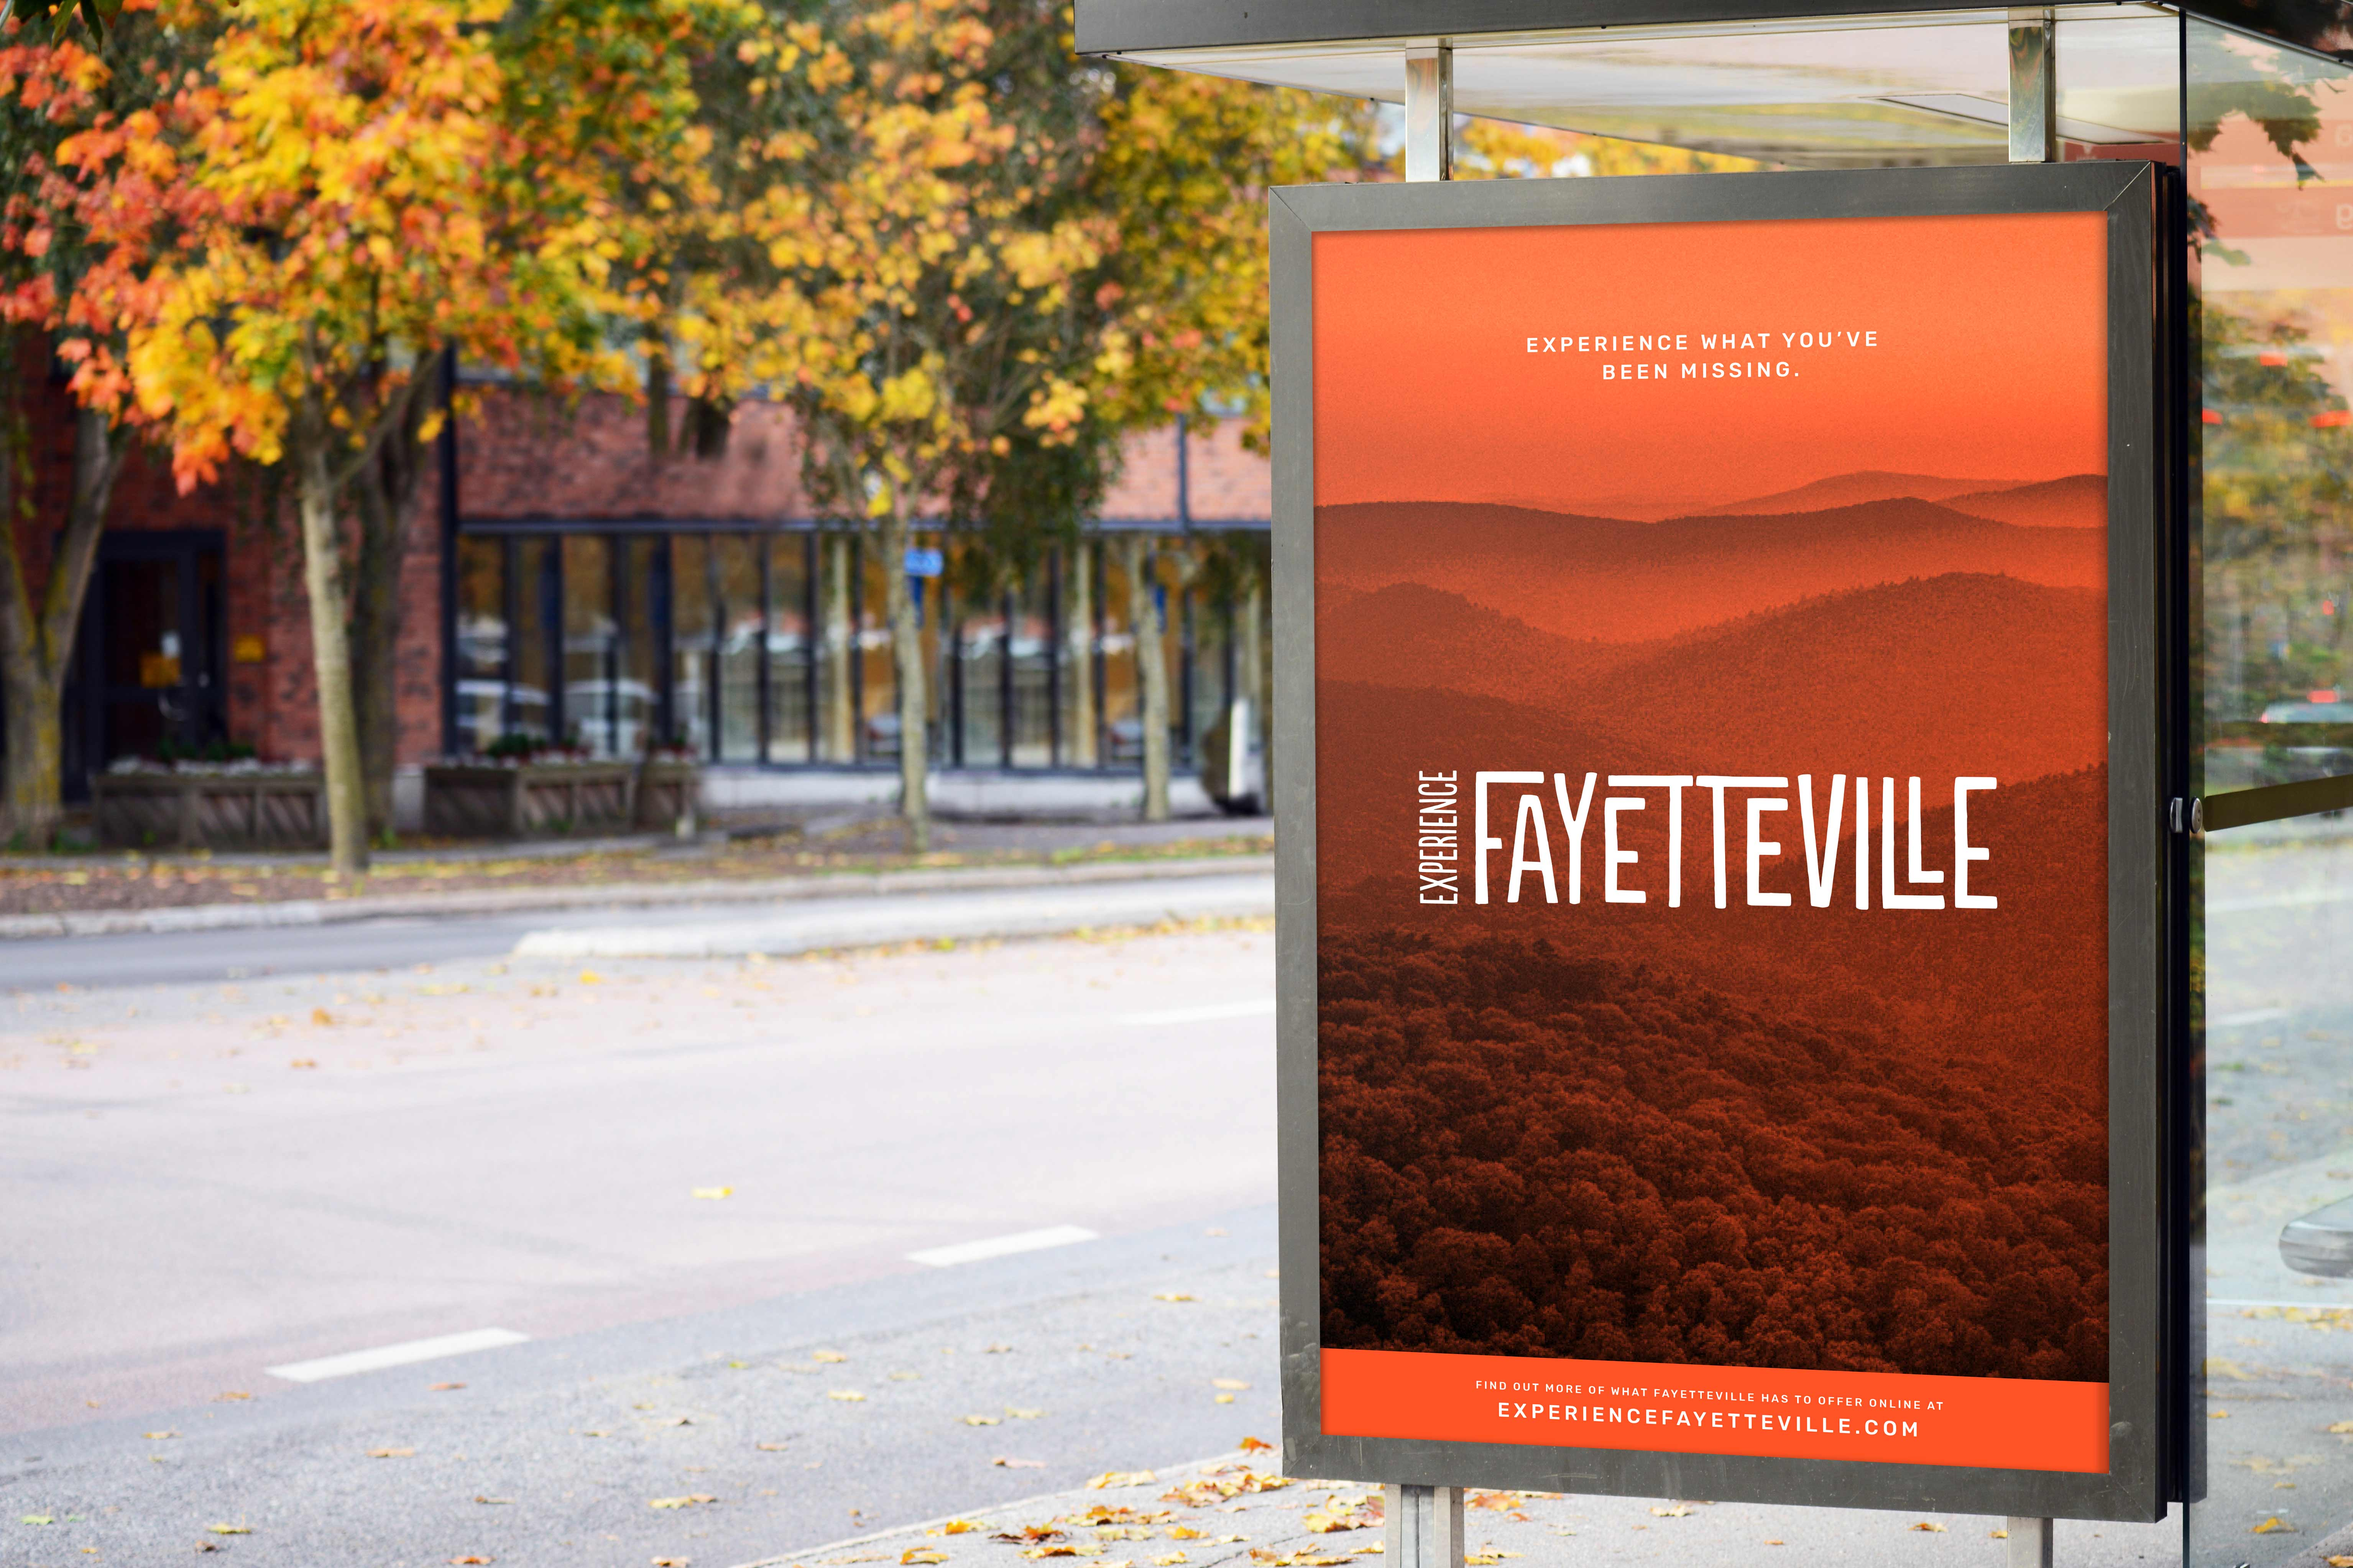 Experience Fayetteville Bus Sign